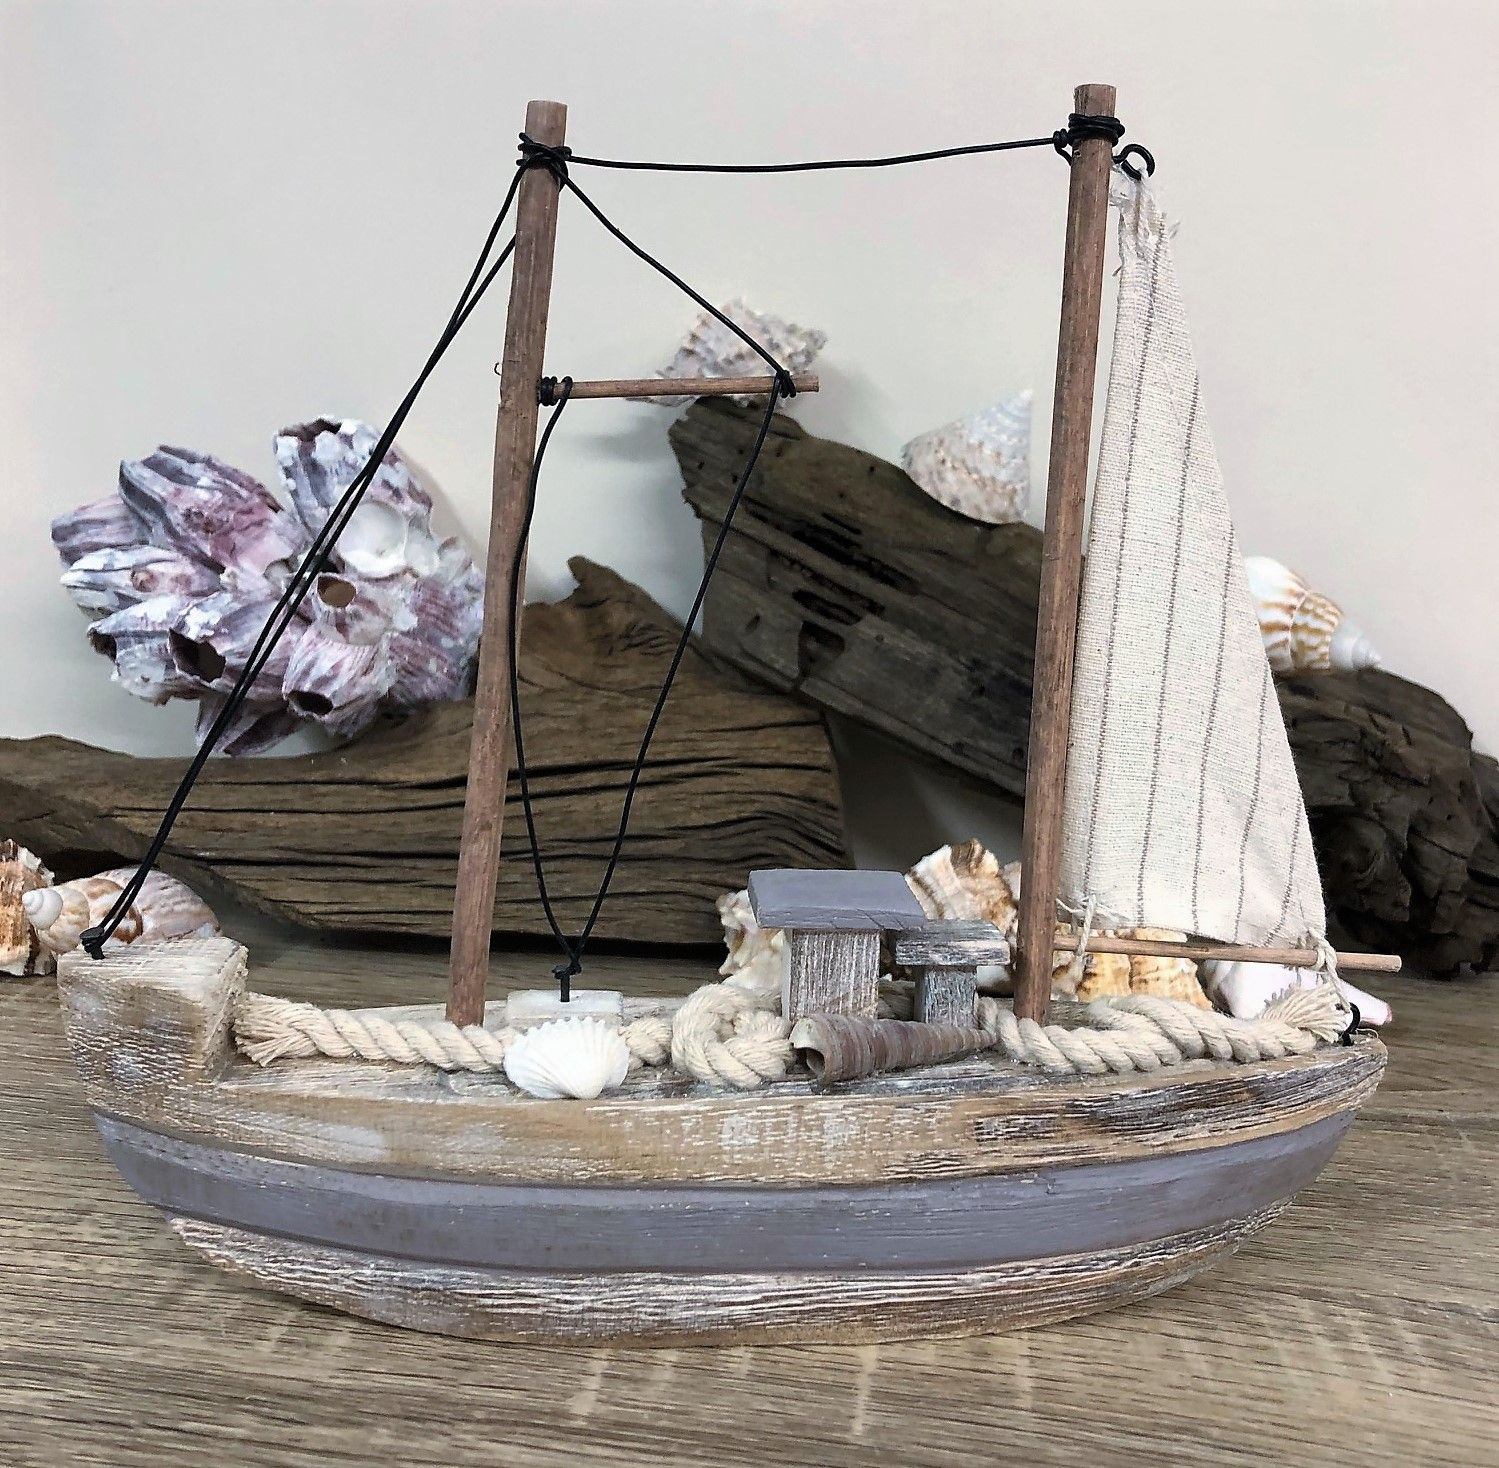 Natural Finish Wooden Boat With Shells